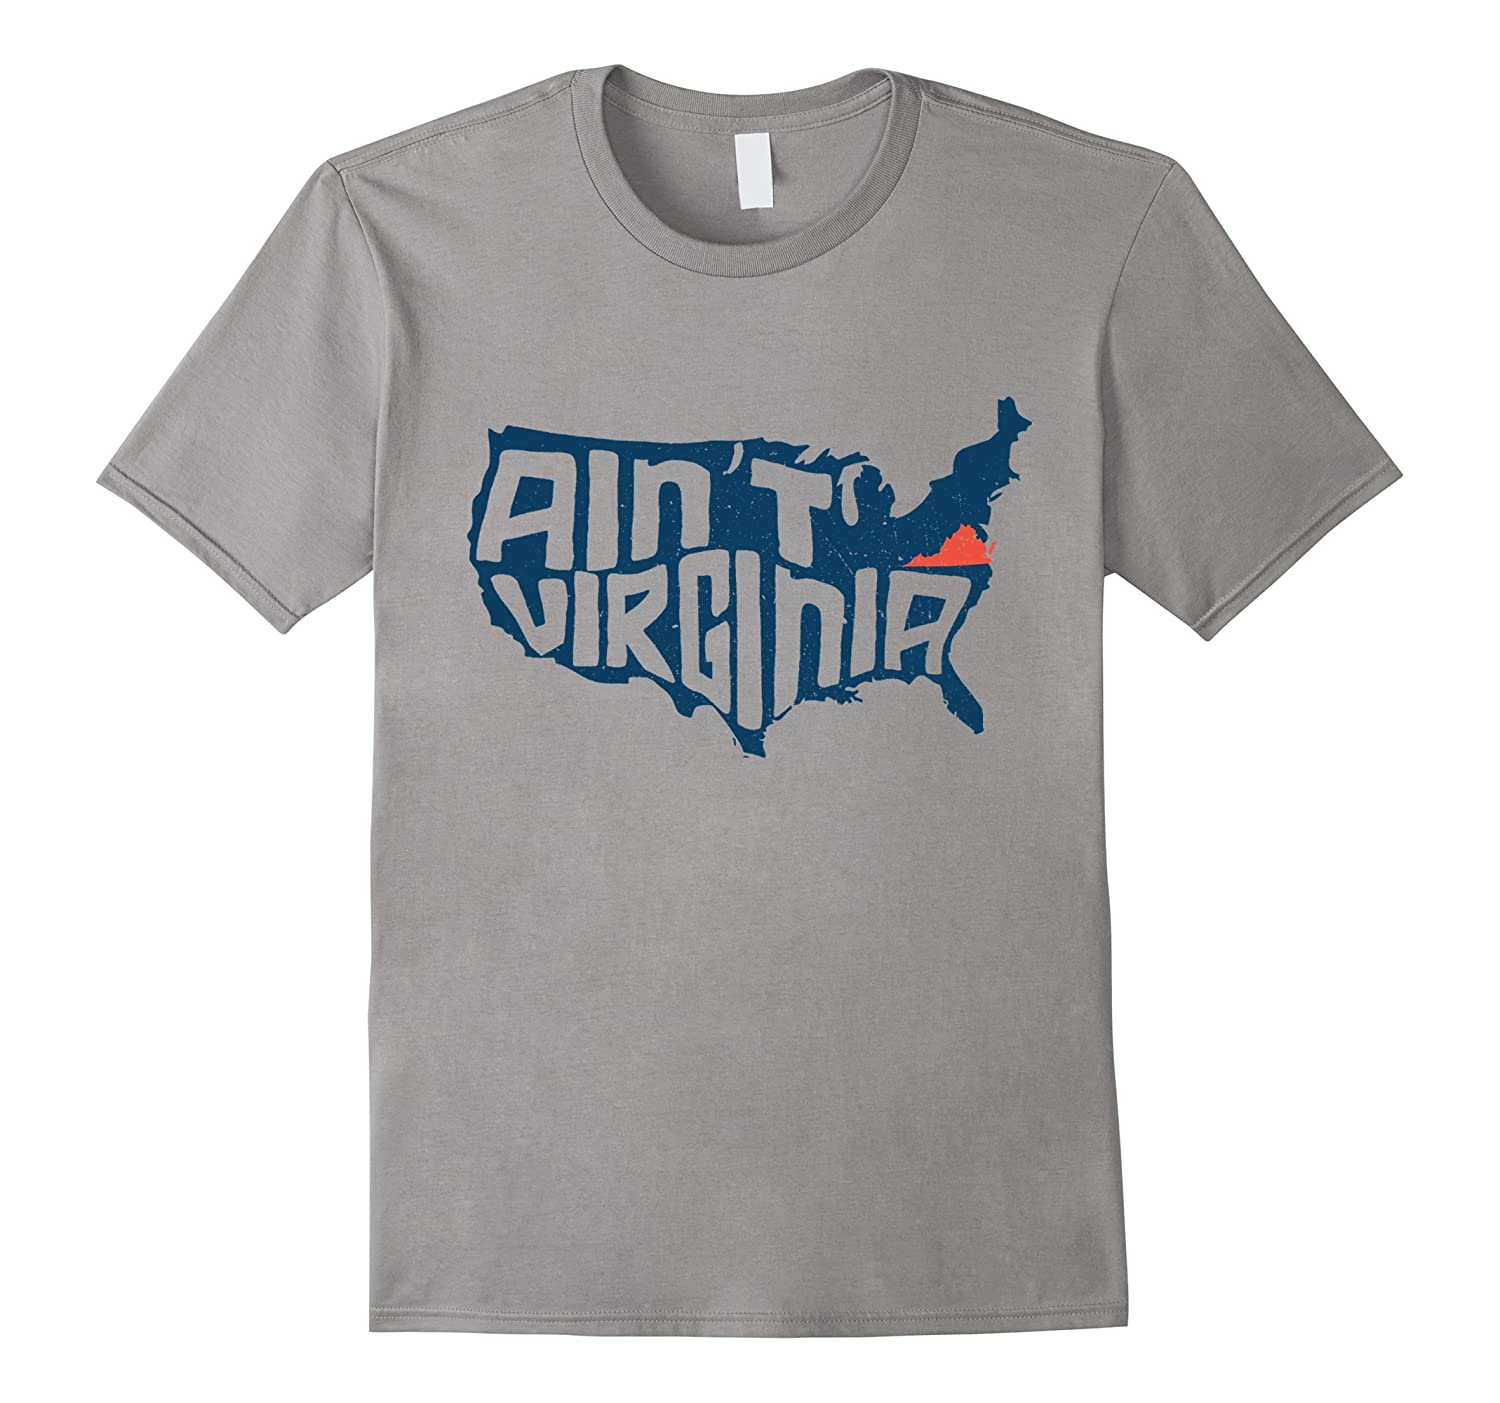 Ain't Virginia Home Southern Born State Pride T-Shirt